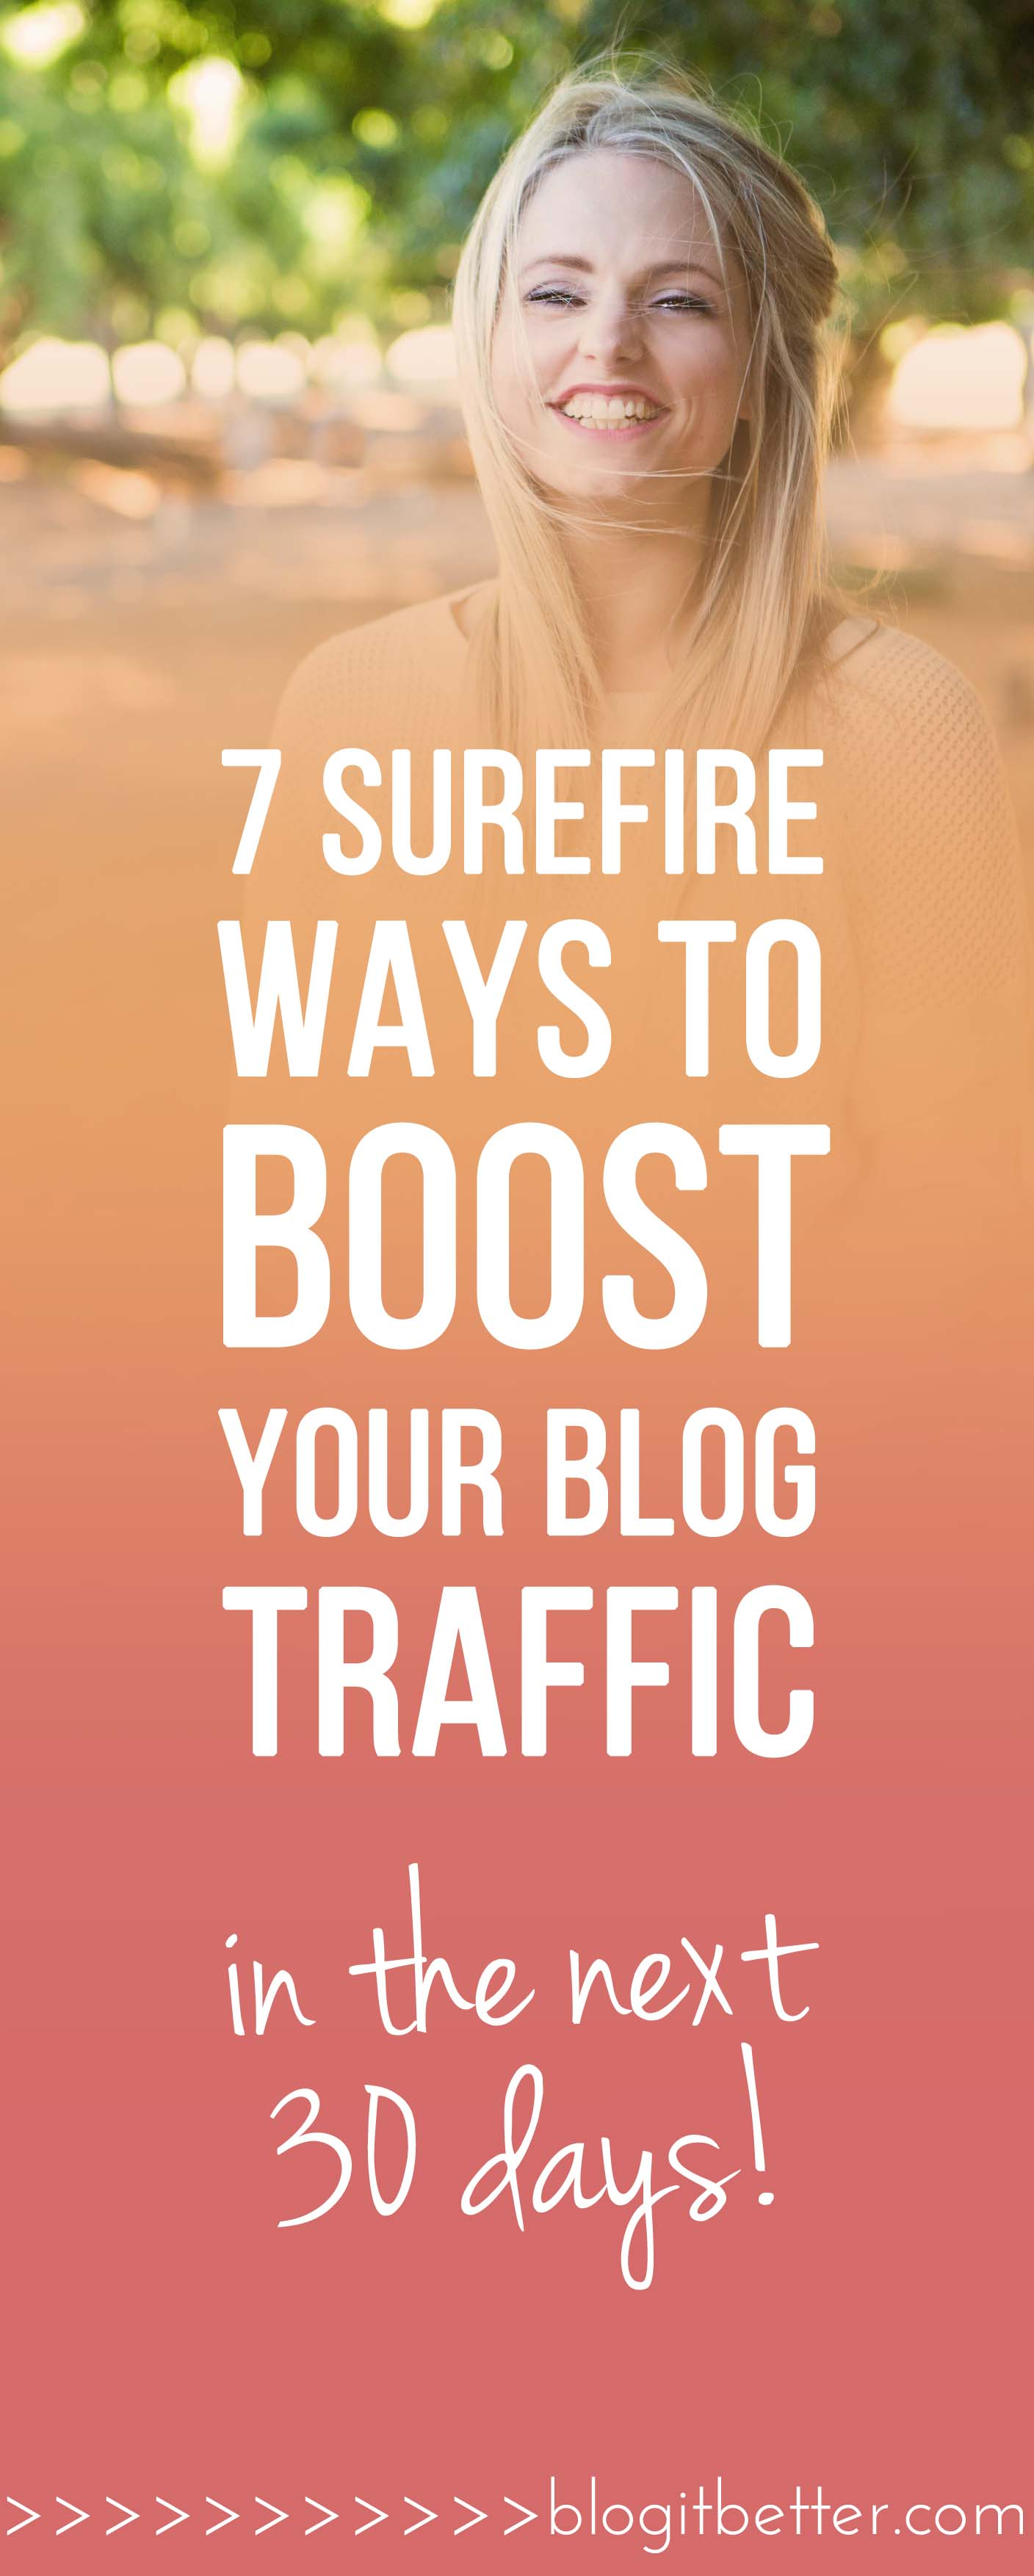 7 Surefire Ways To Boost Your Blog Traffic in Less Than 30 Days! Blog it Better!